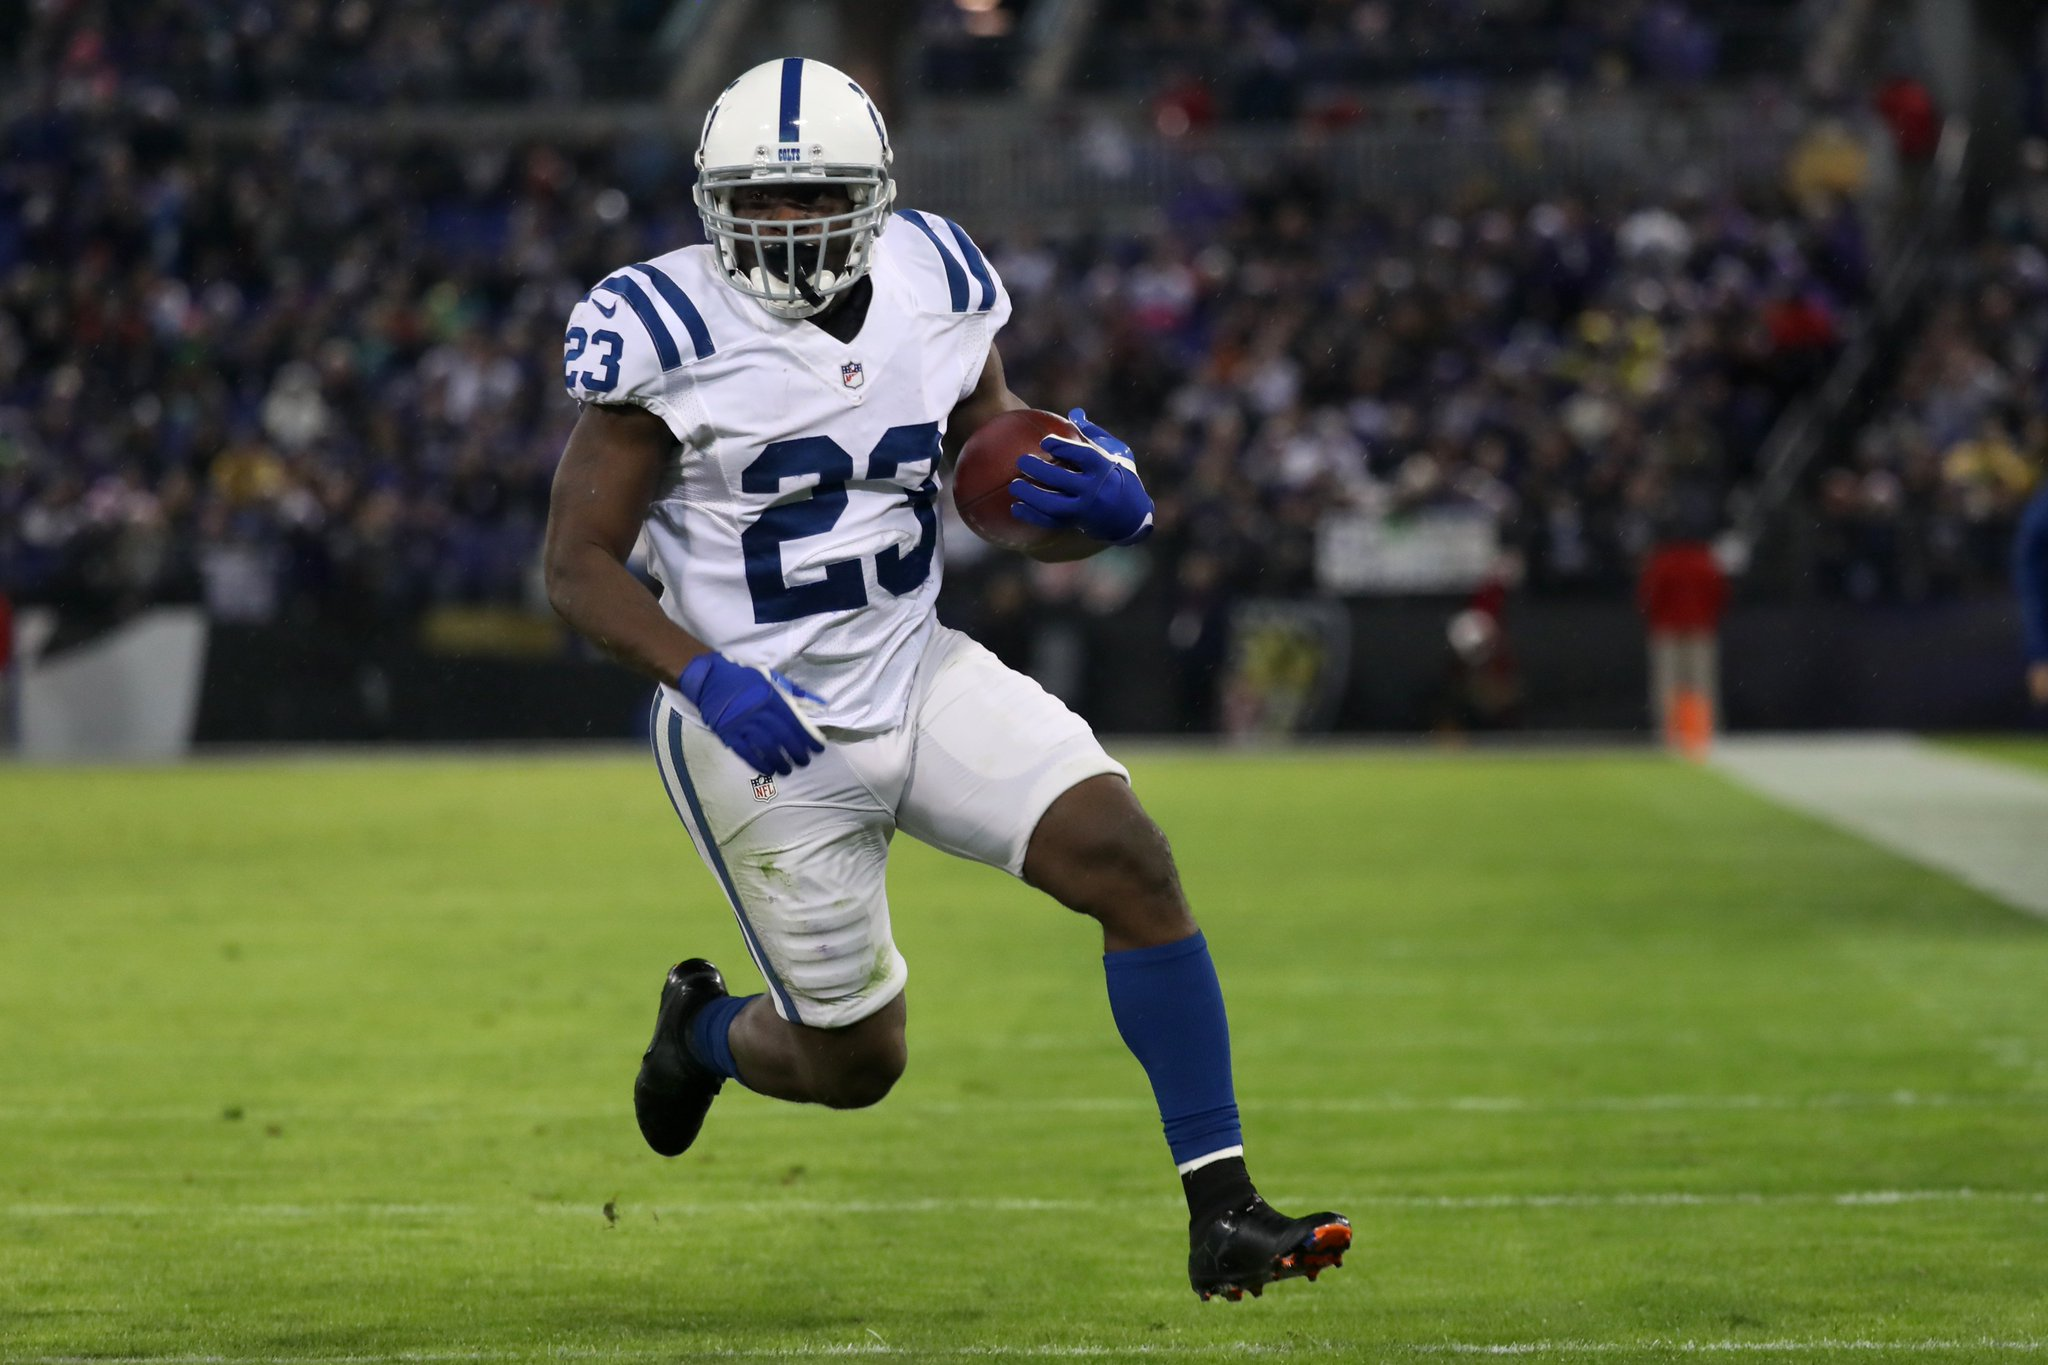 Colts will not bring back Frank Gore this season, per @MikeWellsNFL https://t.co/8Hj7M7pLZW https://t.co/BHS2d3L436